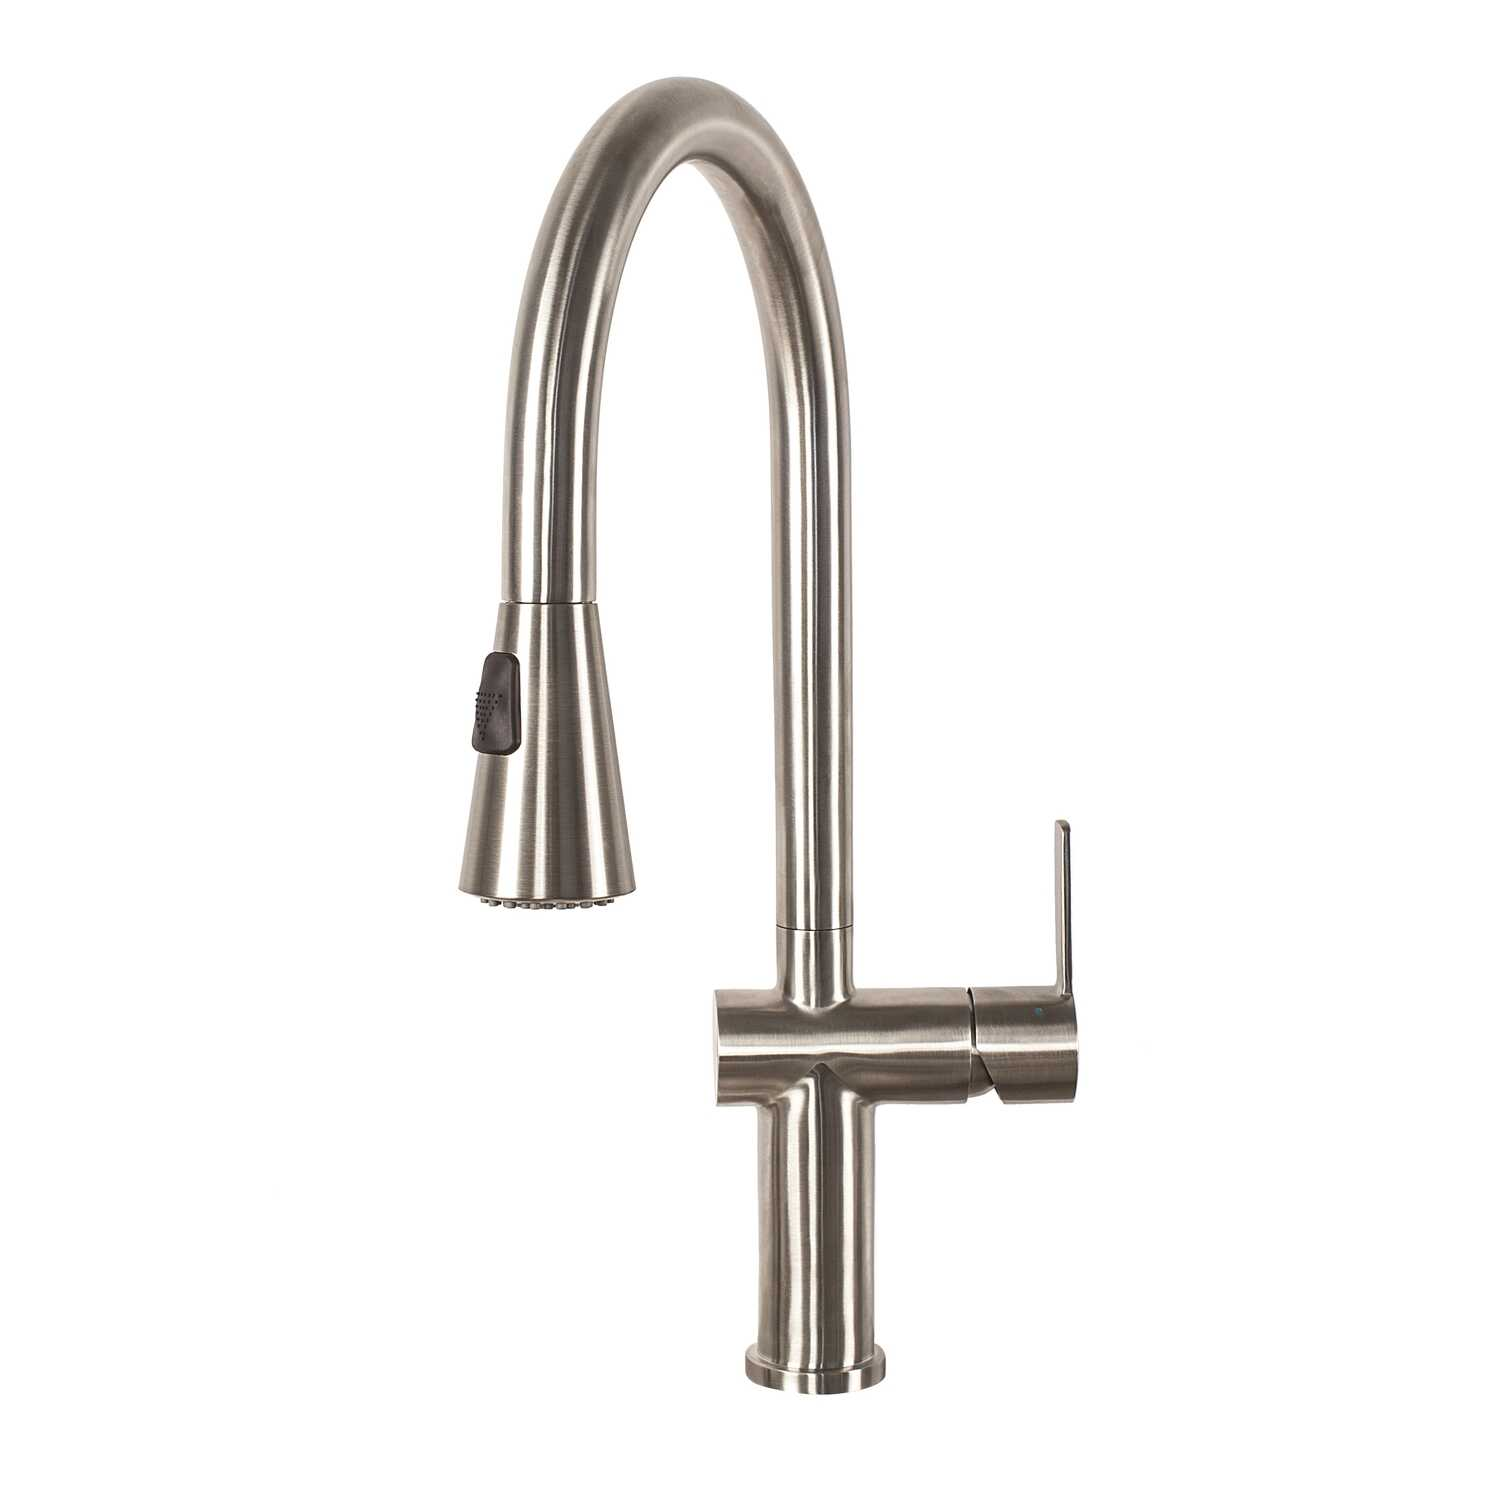 Franke  Bern Pro  Pull Down  One Handle  Stainless Steel  Kitchen Faucet